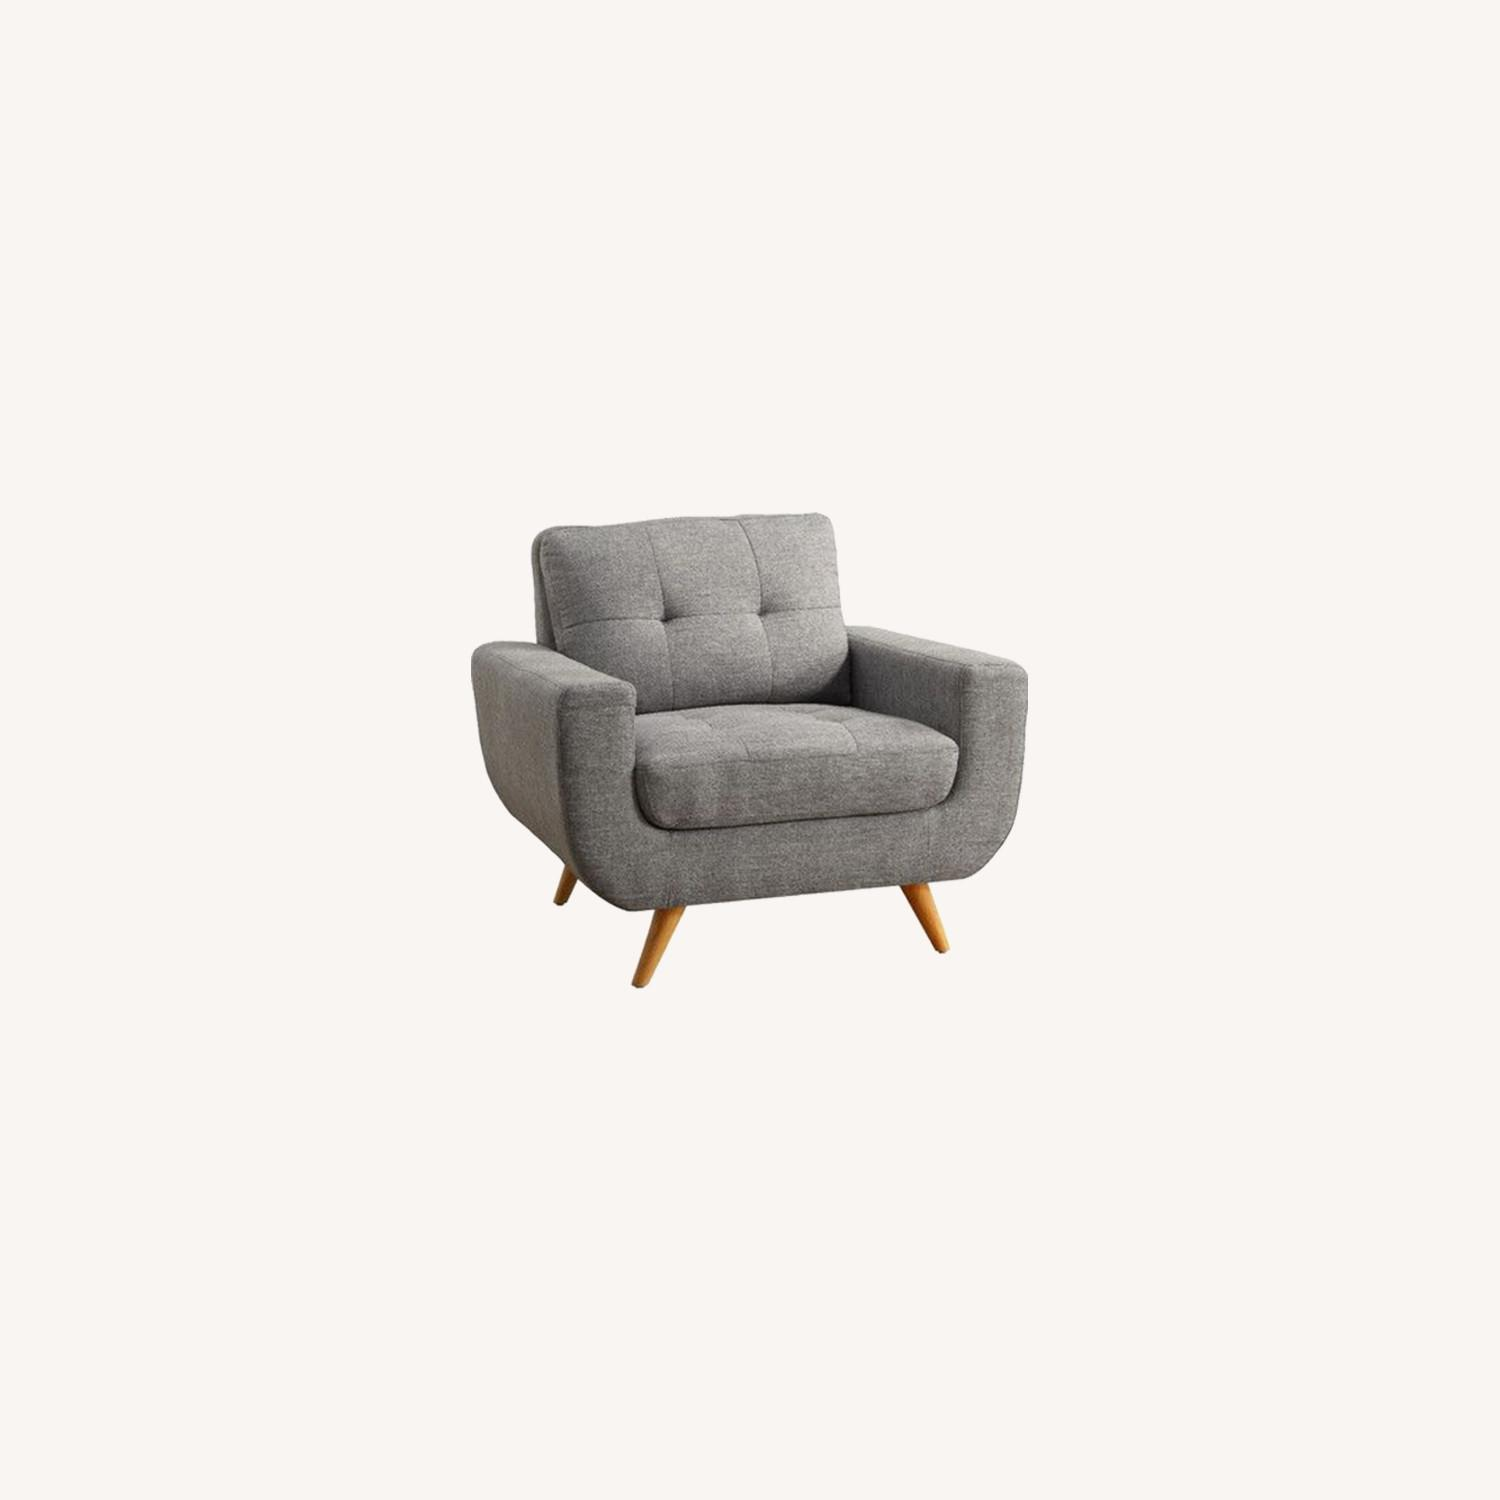 Wayfair Grey ArmChair Instant Home - image-0